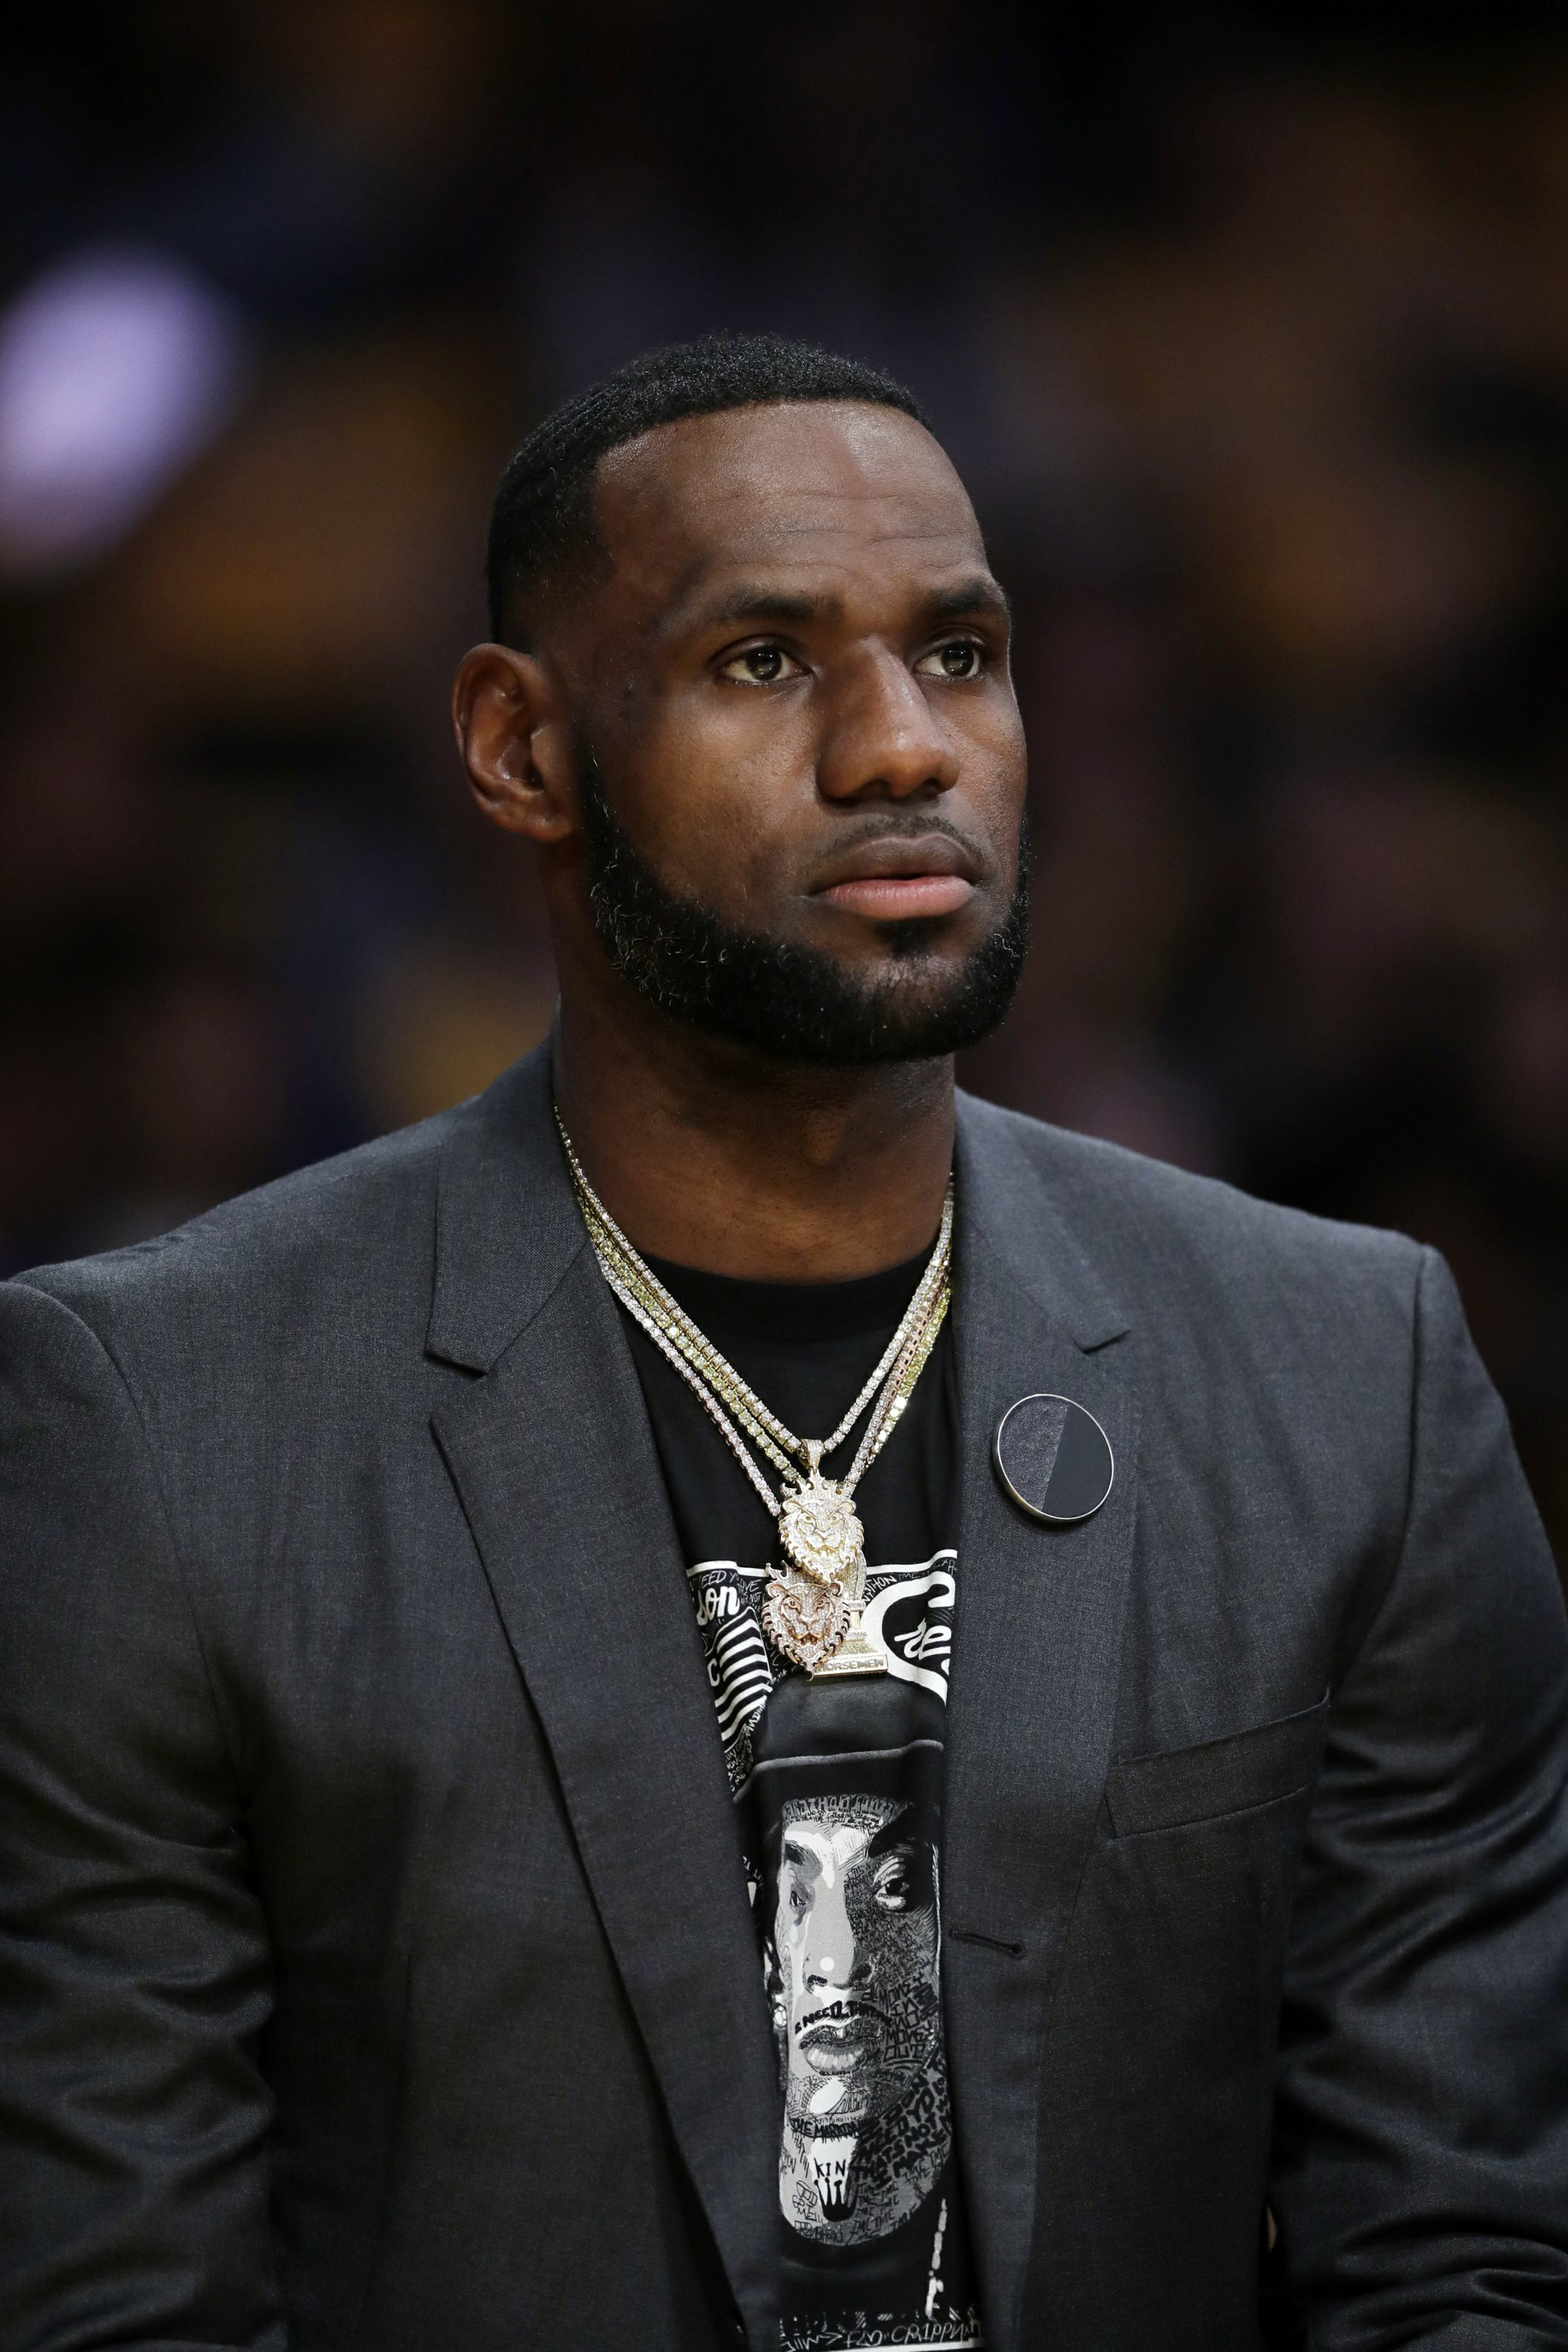 af3f14103a1 LeBron James to be executive producer of boxing series